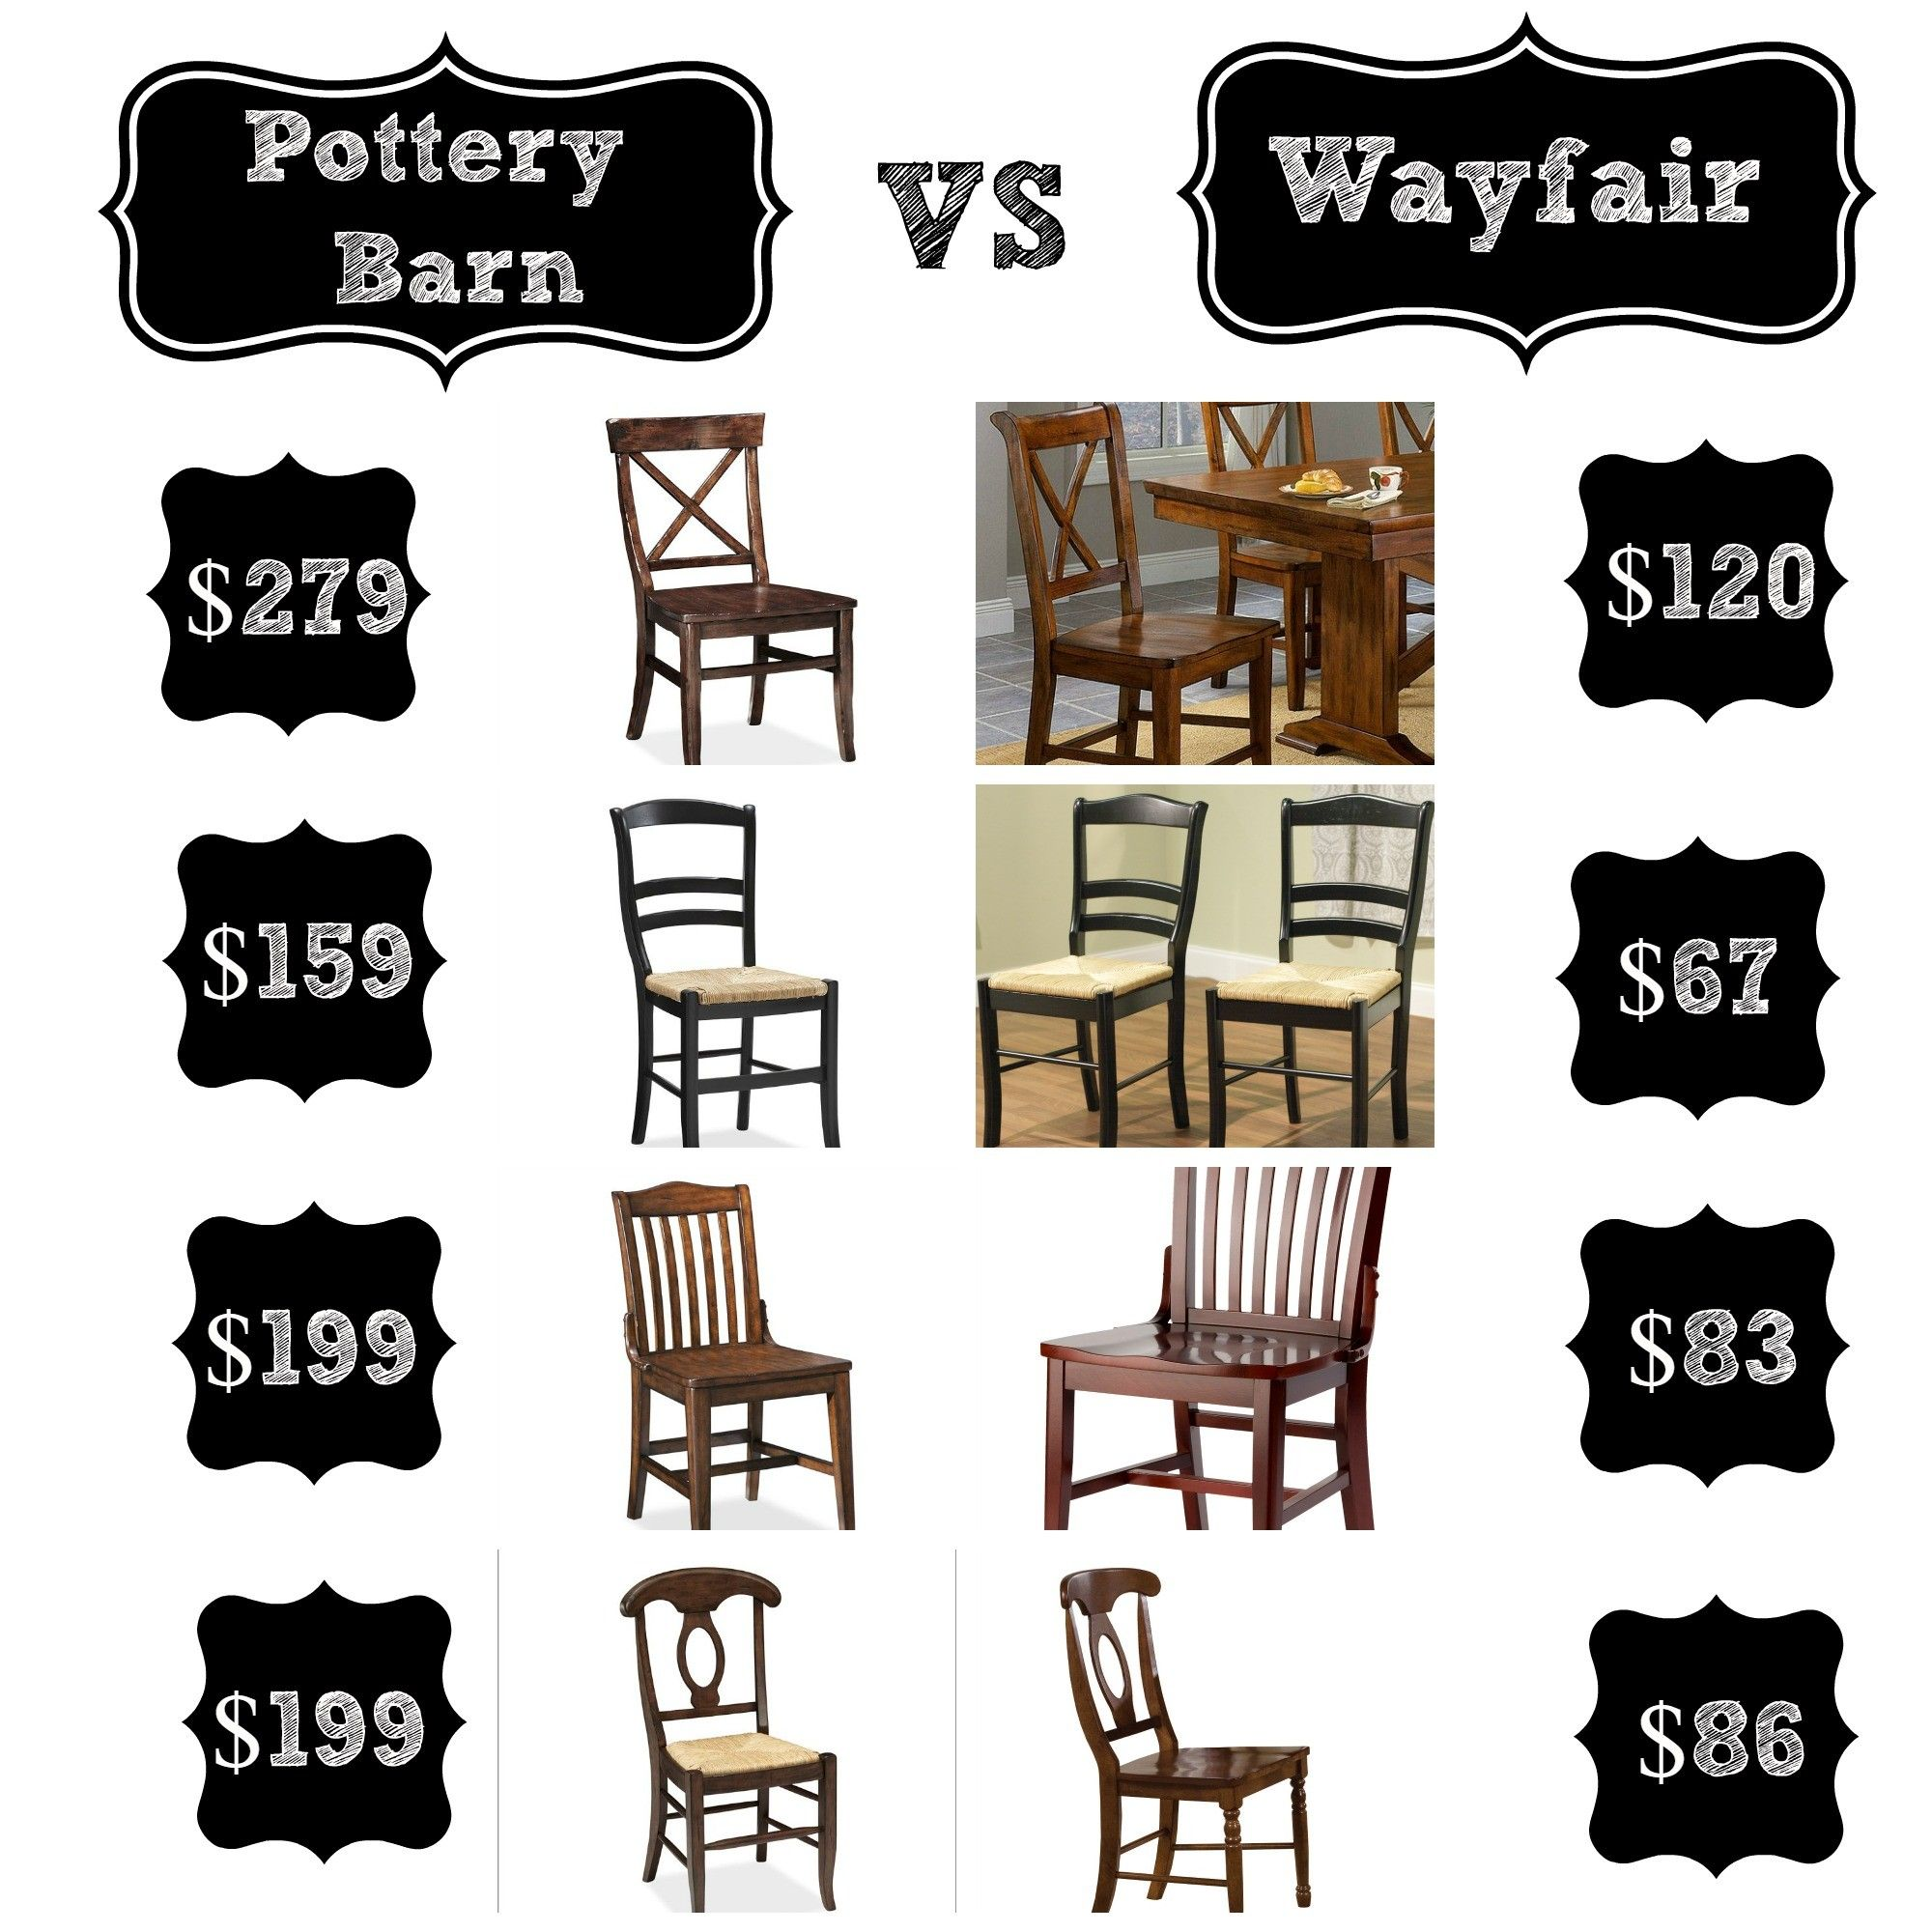 Decor Look Alikes | Pottery Barn vs Wayfair : Dining Chairs. Keep ...